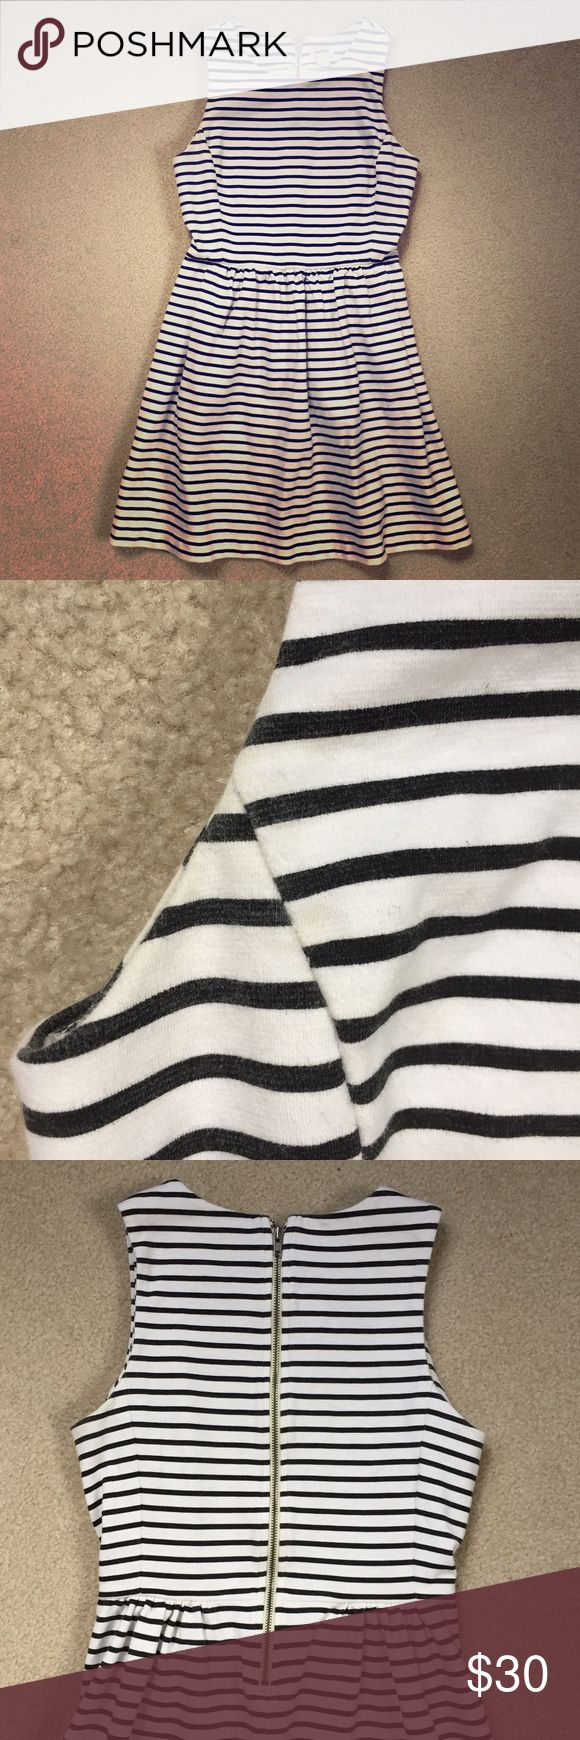 J. Crew Striped Mini Dress J. Crew fit and flare dress in black and white stripes. Slight wear in the armpits but other than that, this dress is in great condition!! Works for winter with cardigan and tights!! Also perfect for spring and summer. J. Crew Dresses Mini